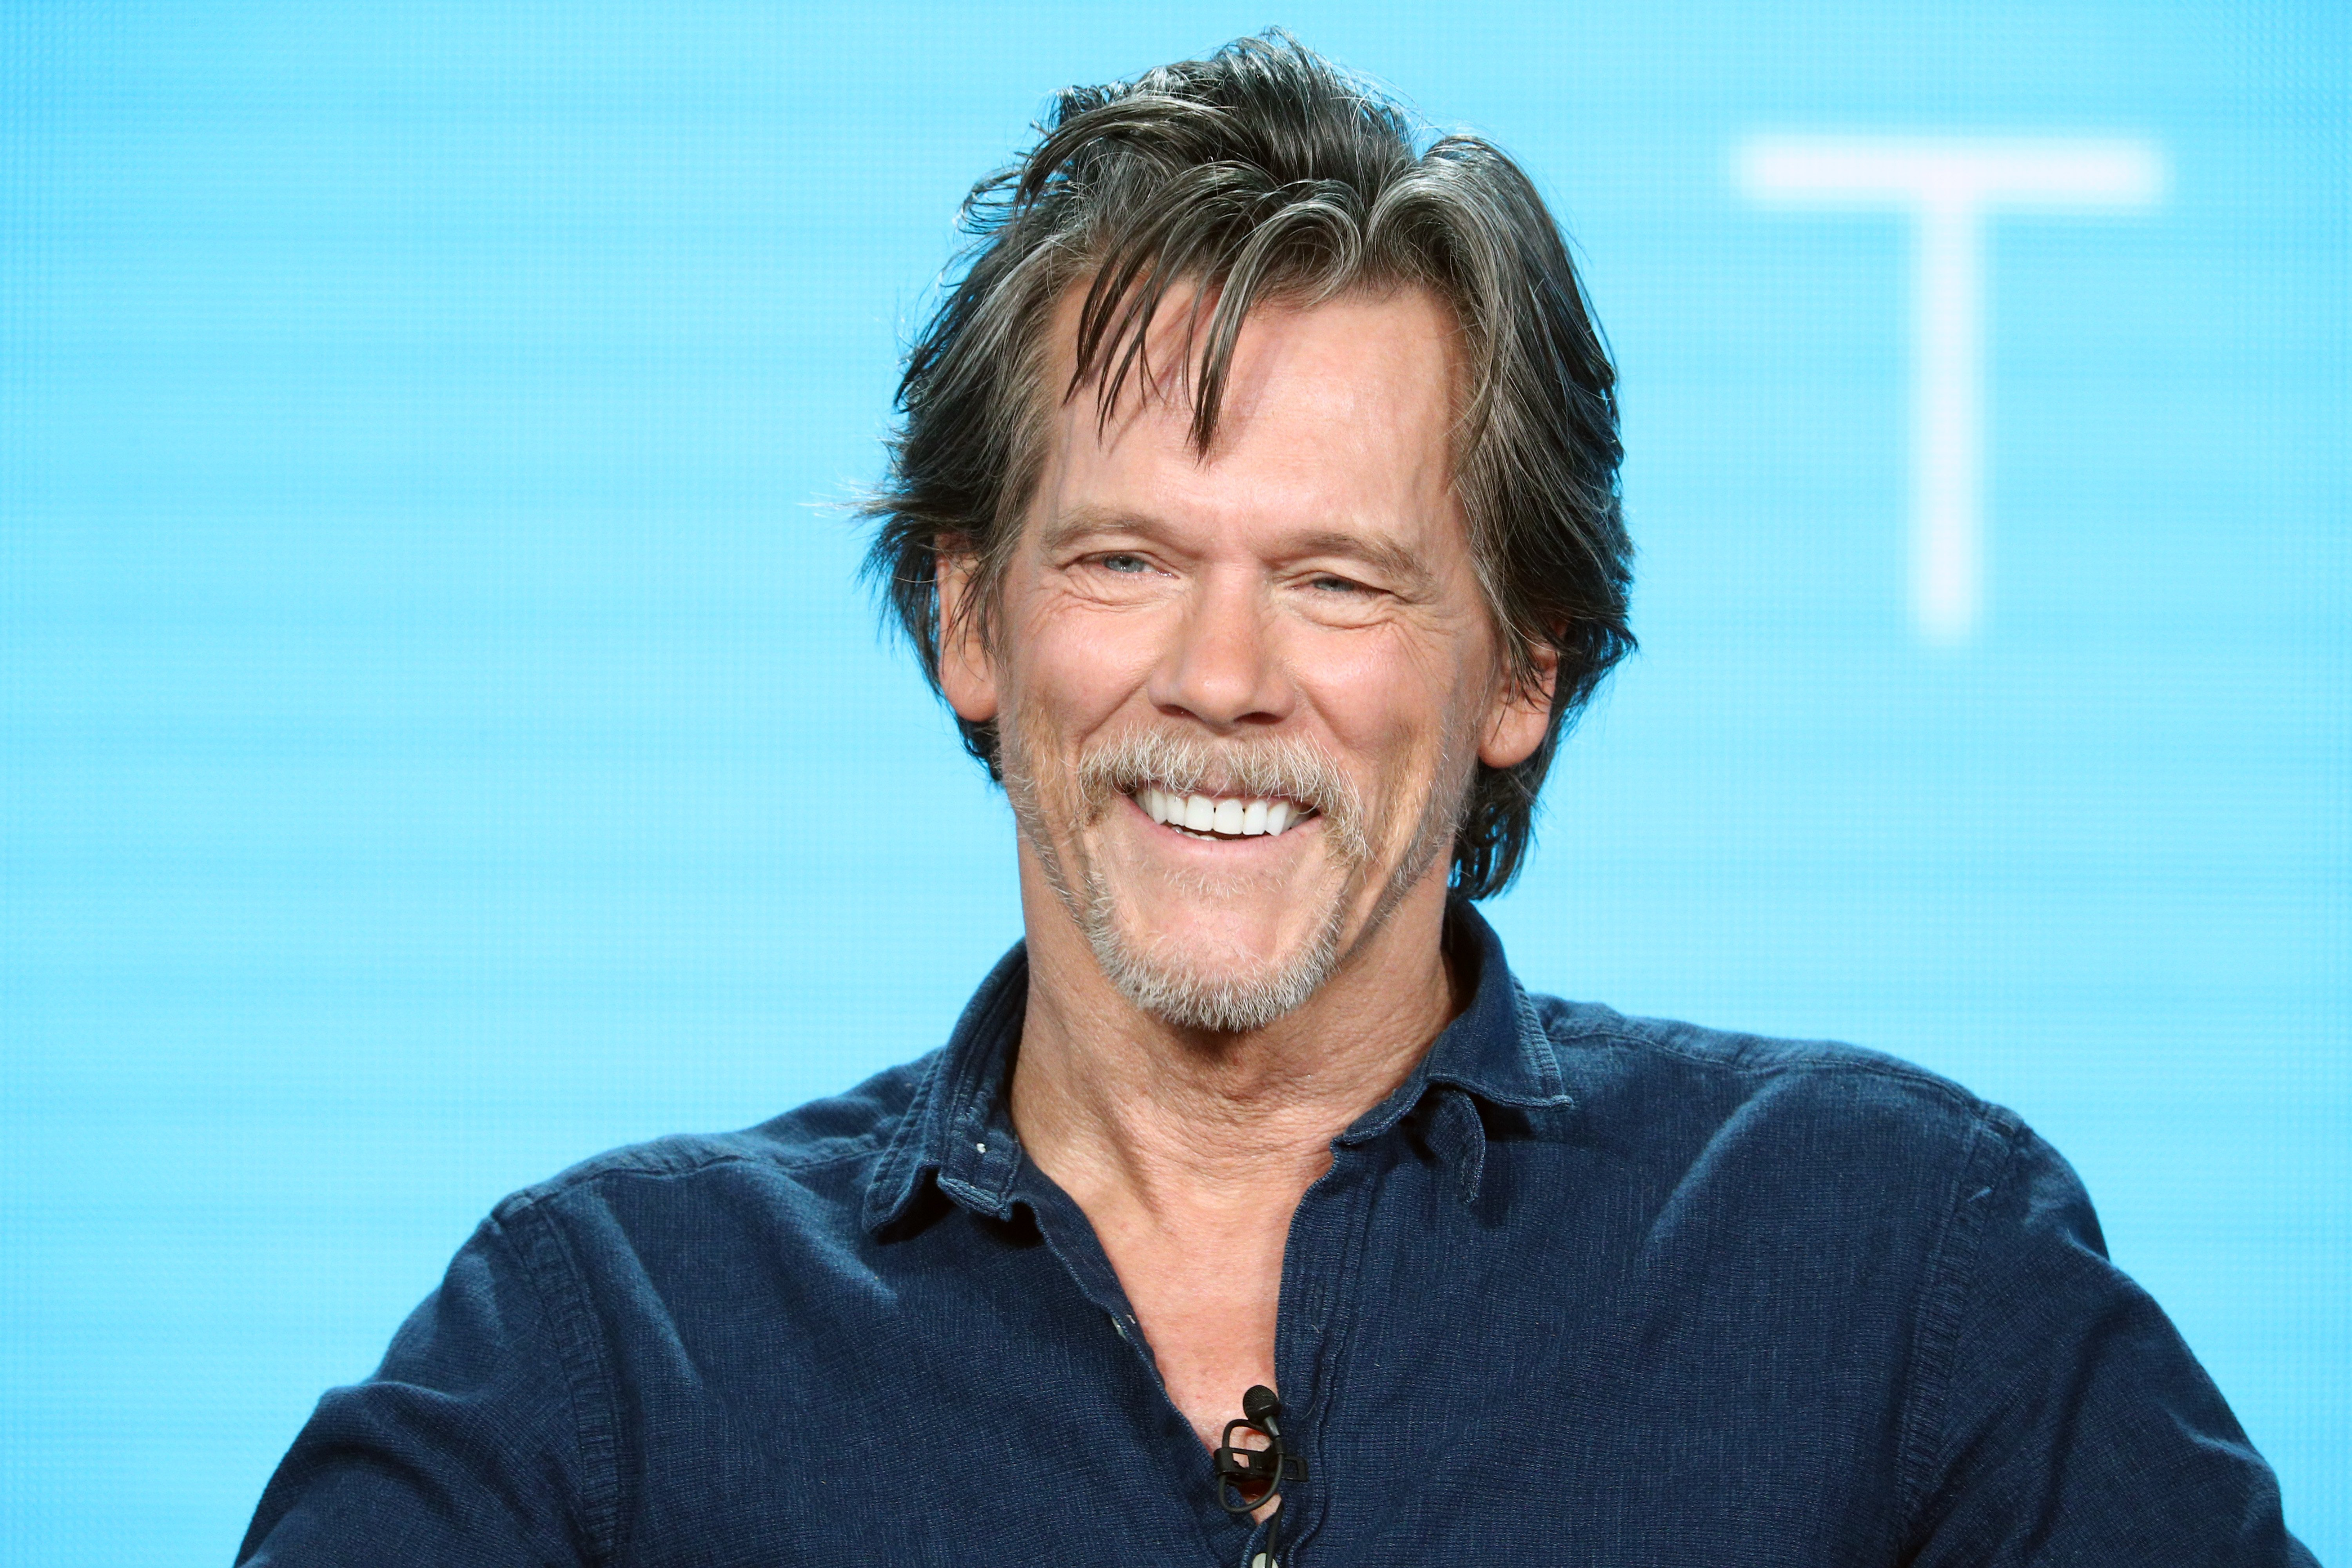 Kevin Bacon speaks during the Showtime segment of the 2019 Winter Television Critics Association Press Tour at The Langham Huntington, Pasadena on January 31, 2019 | Photo: GettyImages